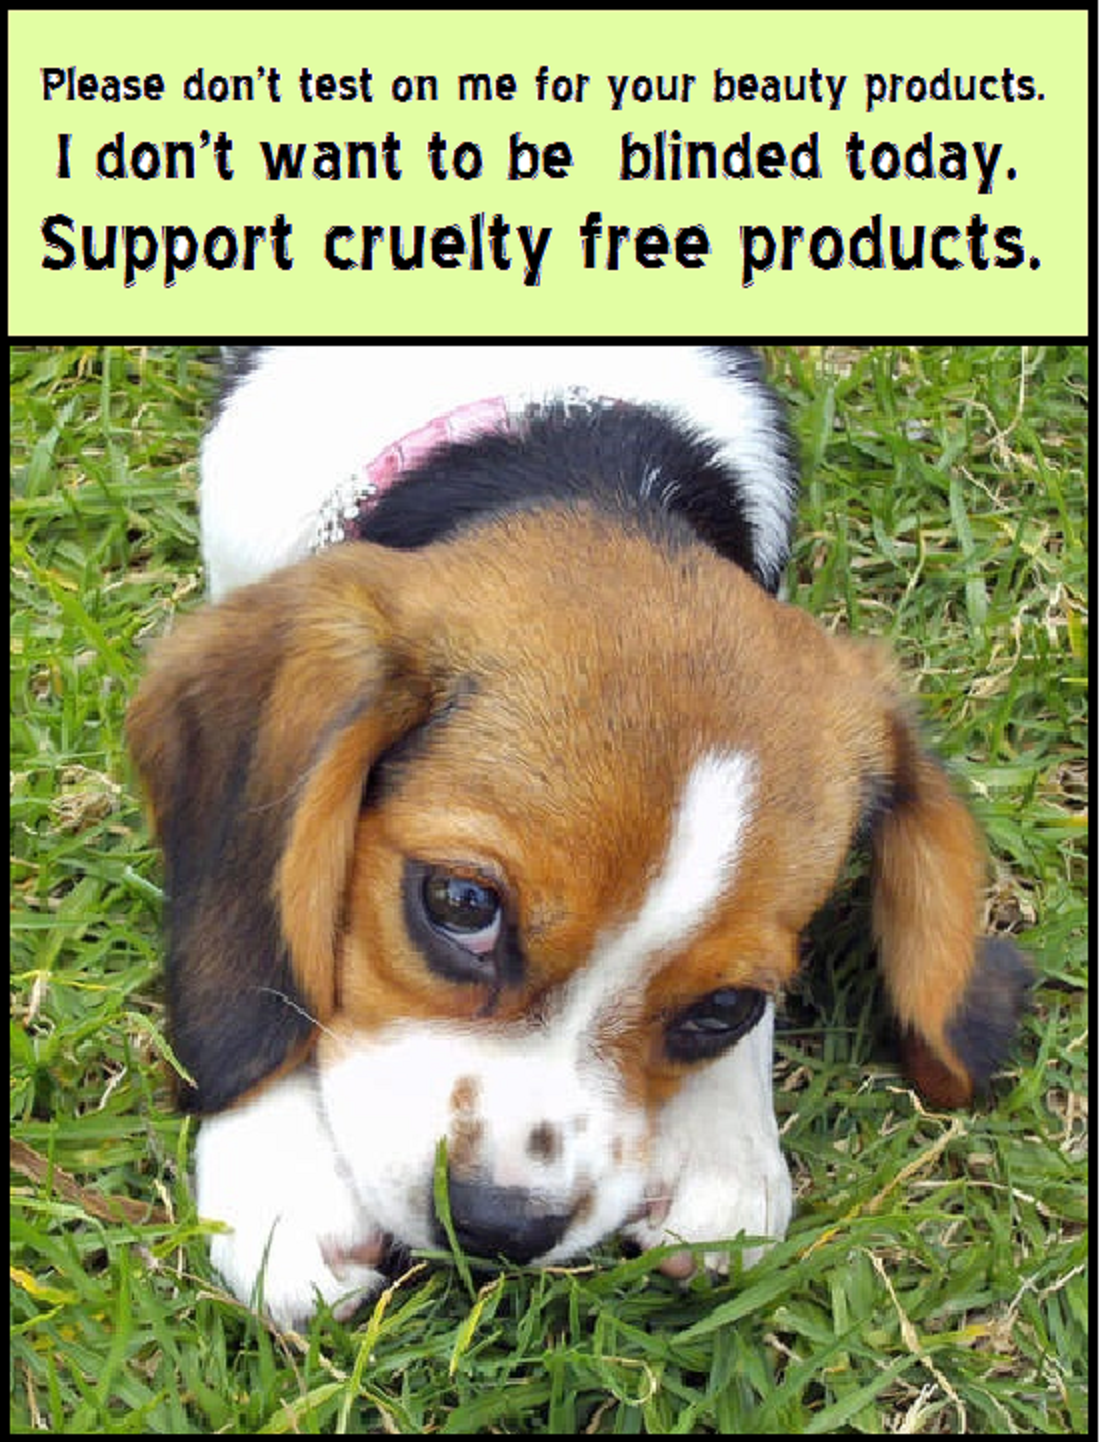 Stop testing on Beagles!! Shop cruelty free. So many